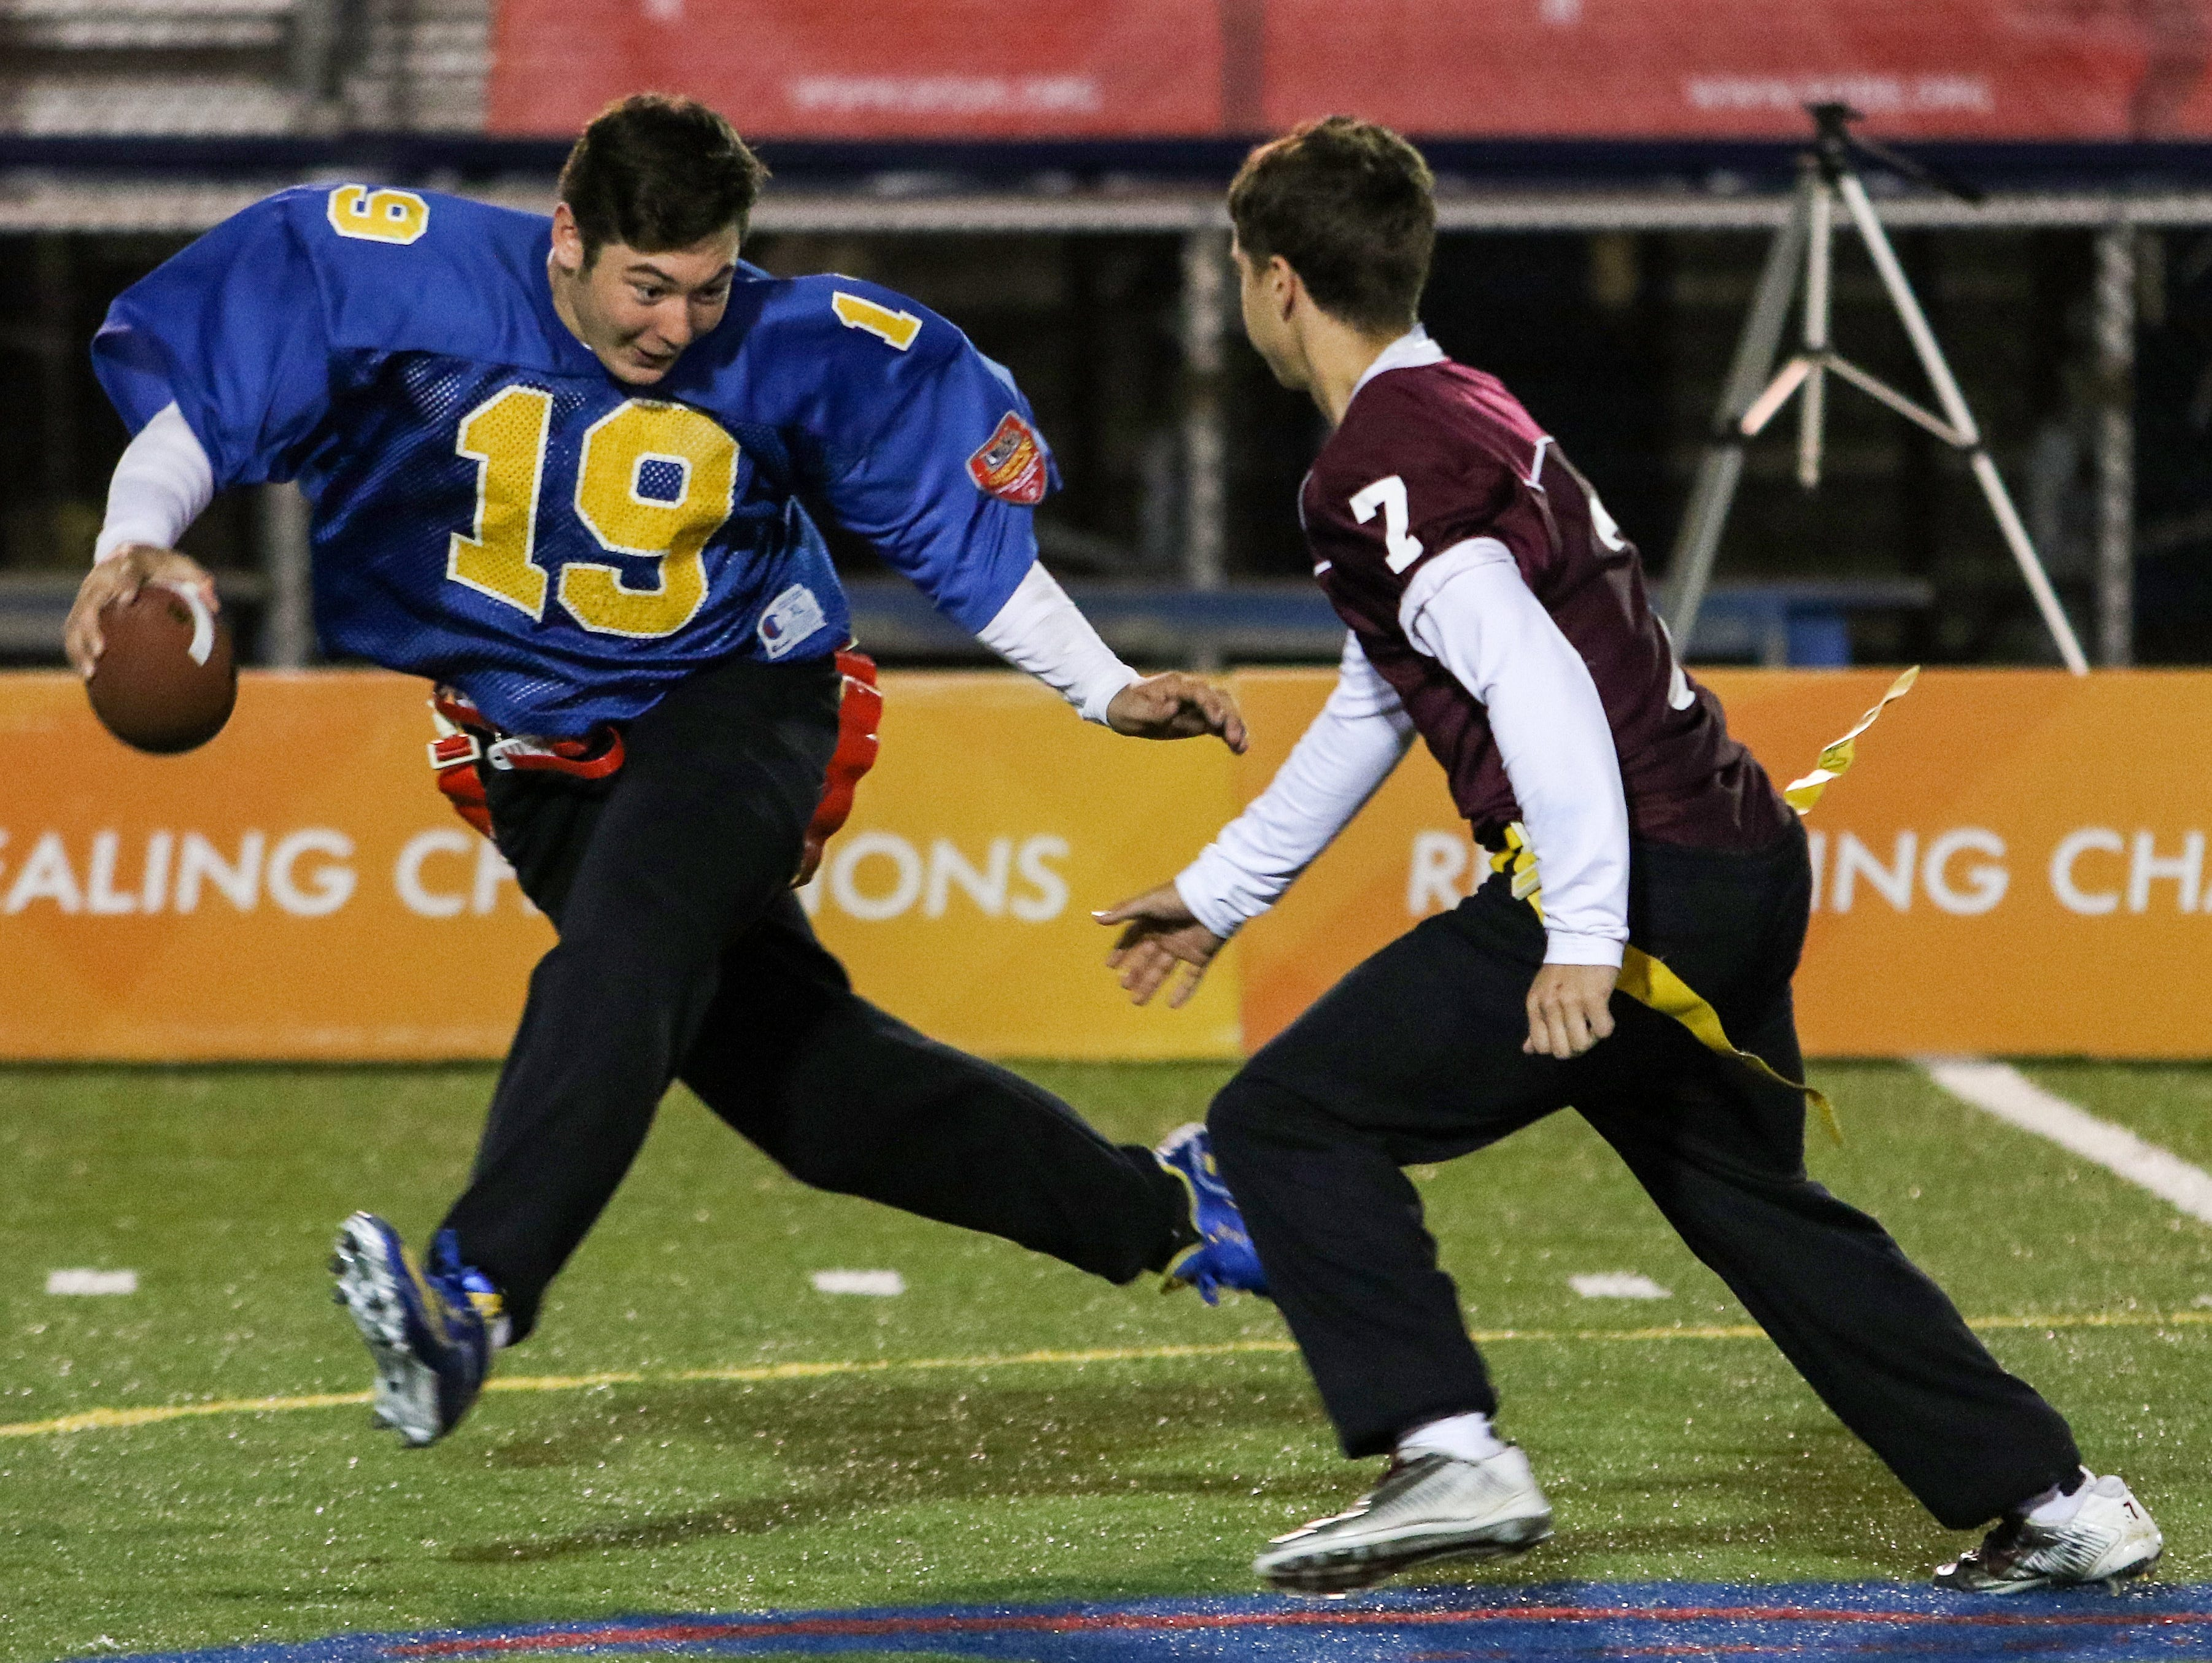 Caesar Rodney Unified Football partner Jared Wagnoffer tries to shake the chase of Concord athlete Luis Echevarria.